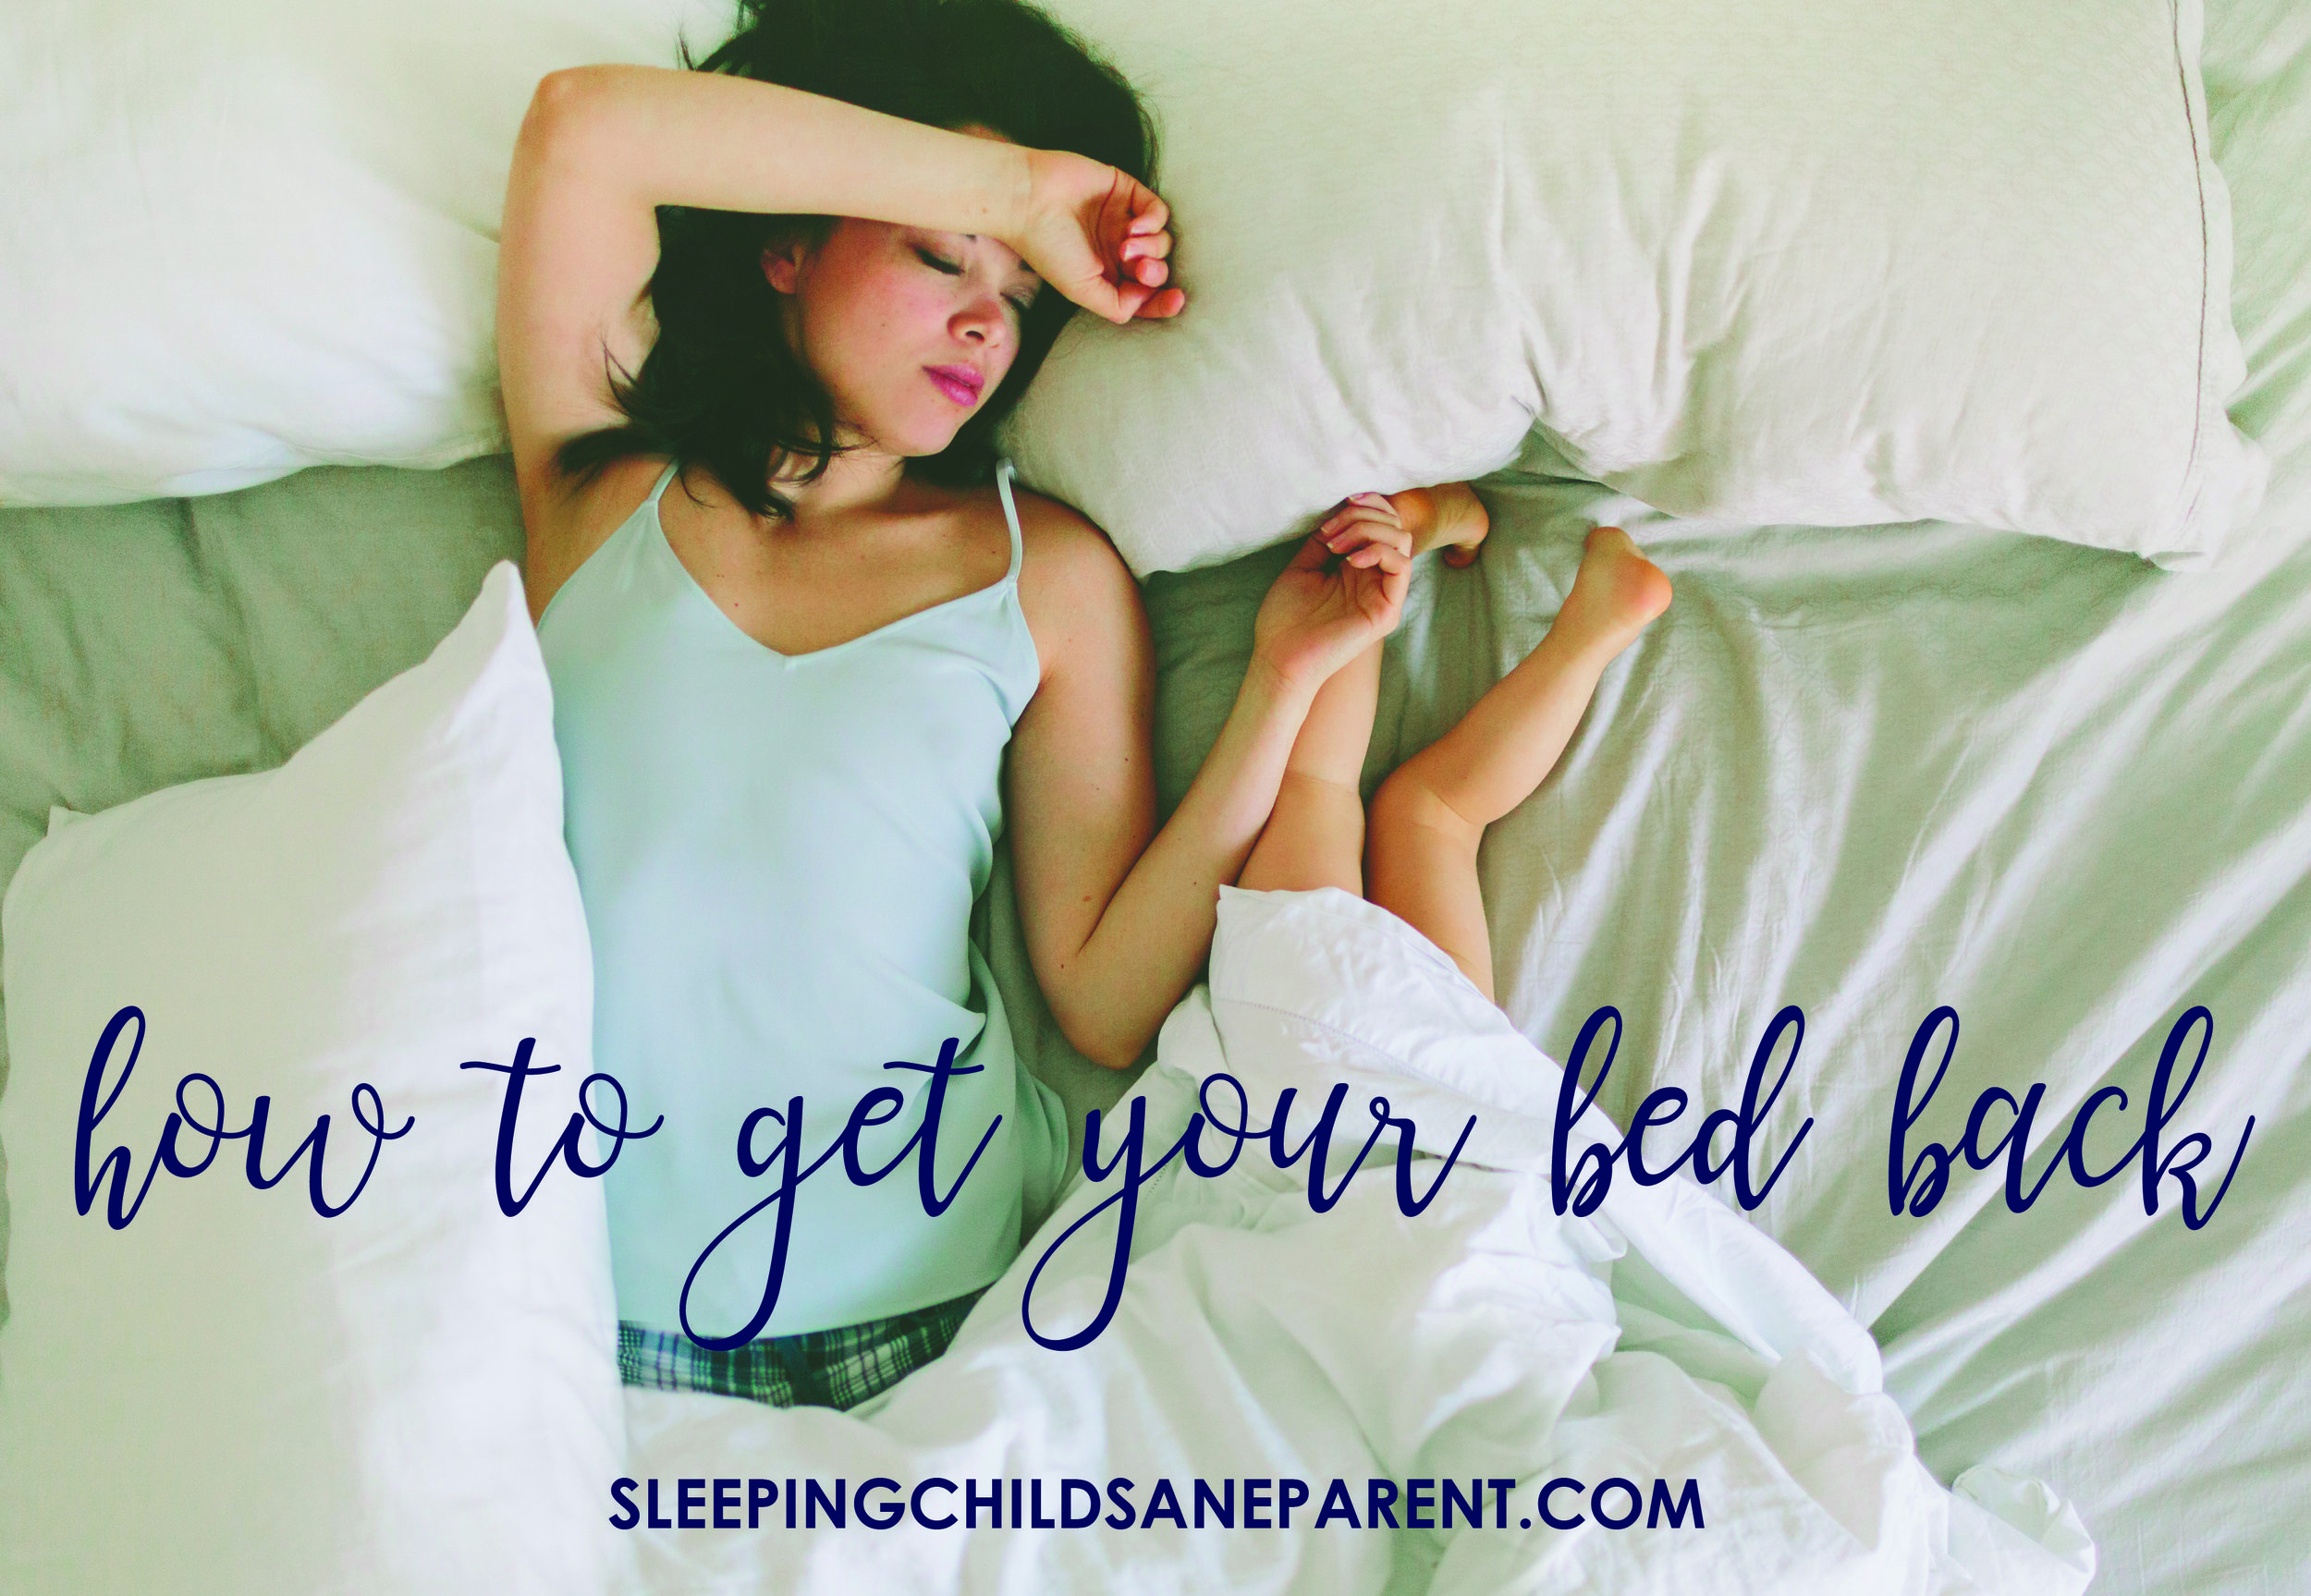 When kids move from a crib to a bed, they suddenly have the freedom to leave their bed, and many kids will take advantage of this! If you want to keep your bed to yourself, follow the steps outlined in this post to teach your child to stay in her own bed.